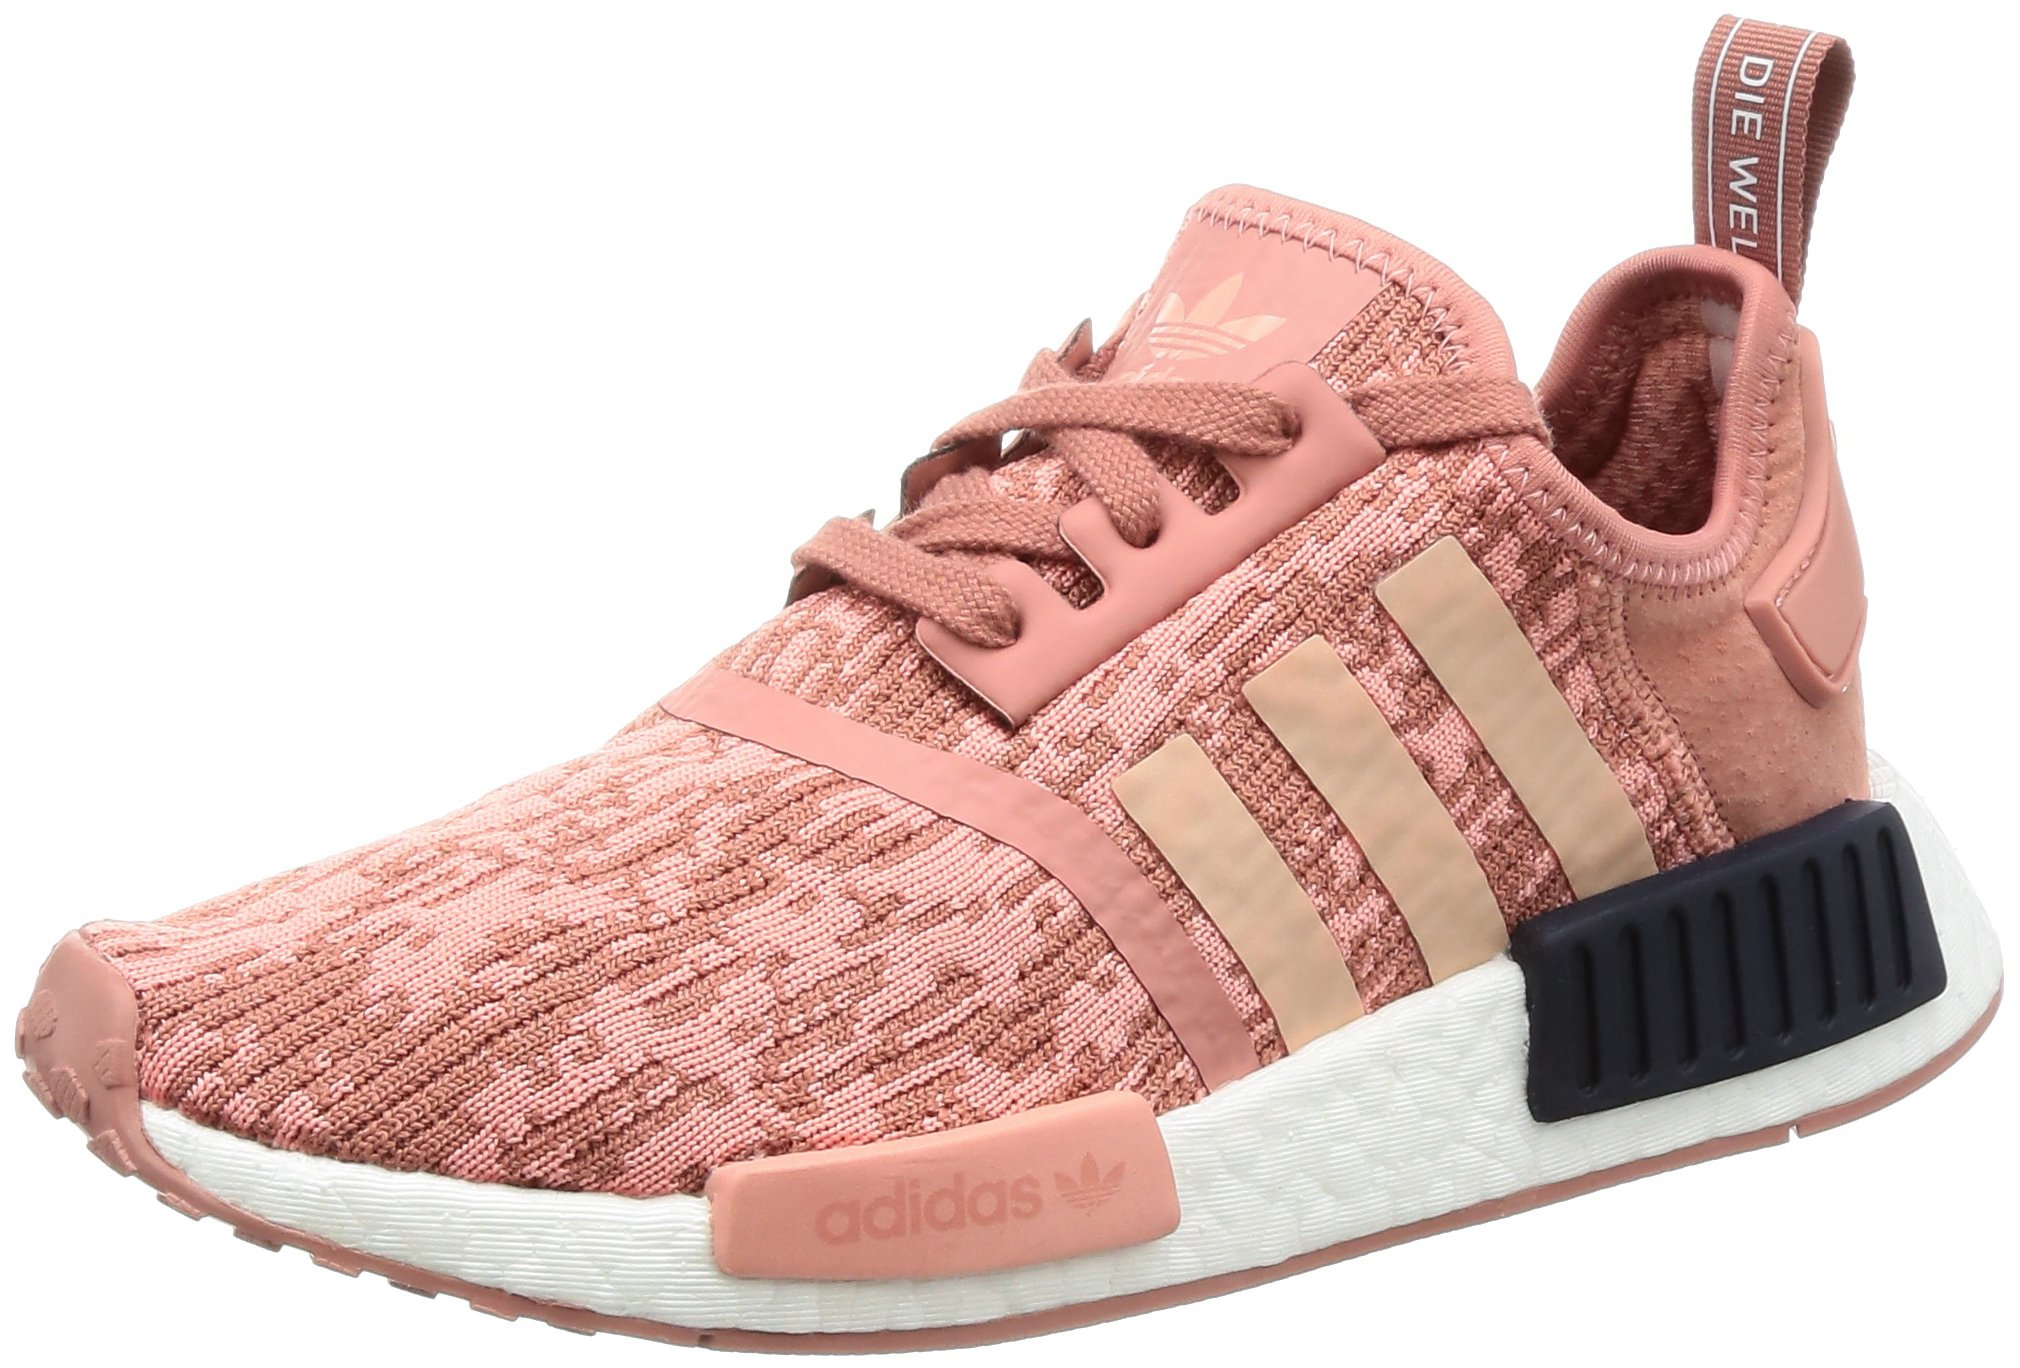 adidas Originals Women's NMD_R1 Trainers Raw Trace US9 Pink